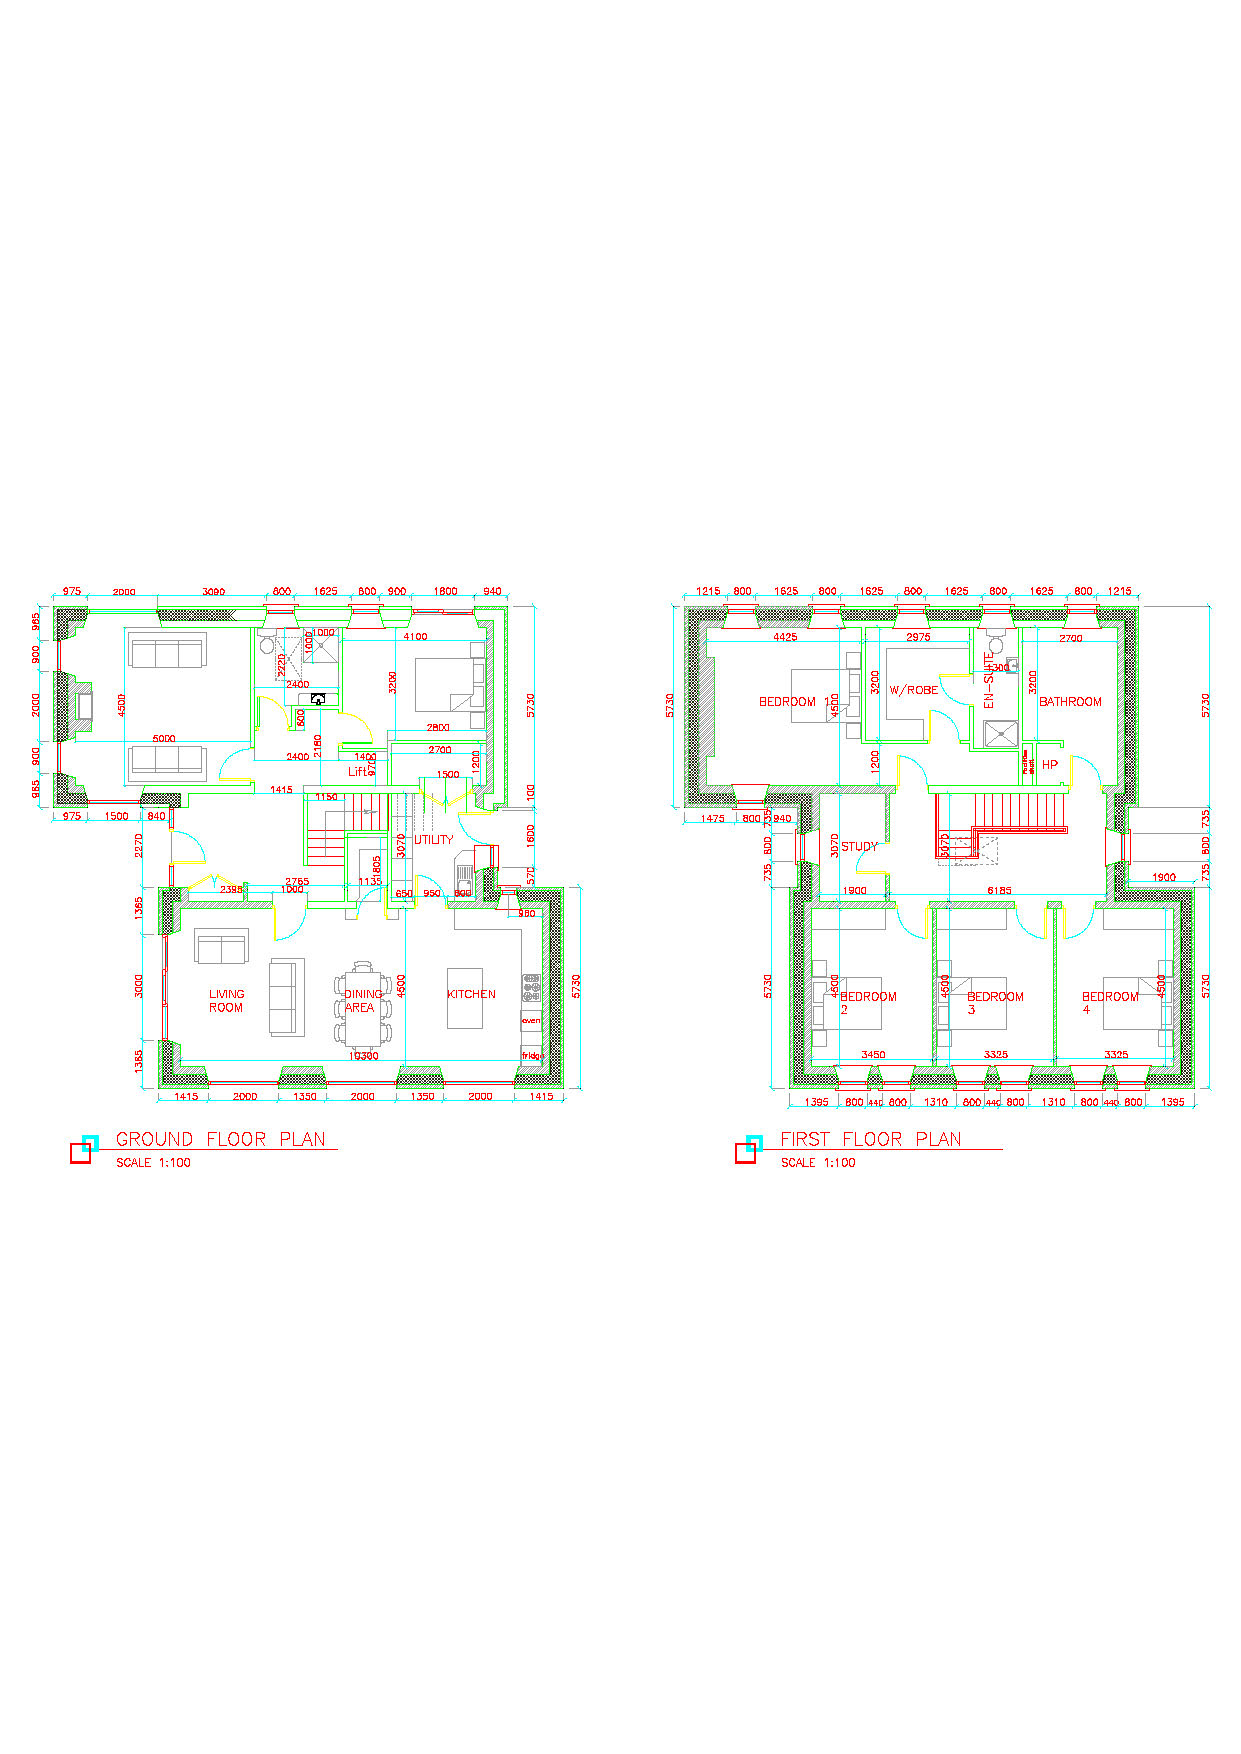 Diy Cork Builder Hits Passive Nzeb With First Self Build Wiring Diagram For 1 Story House Electrical Chatroom Home Final Drawing